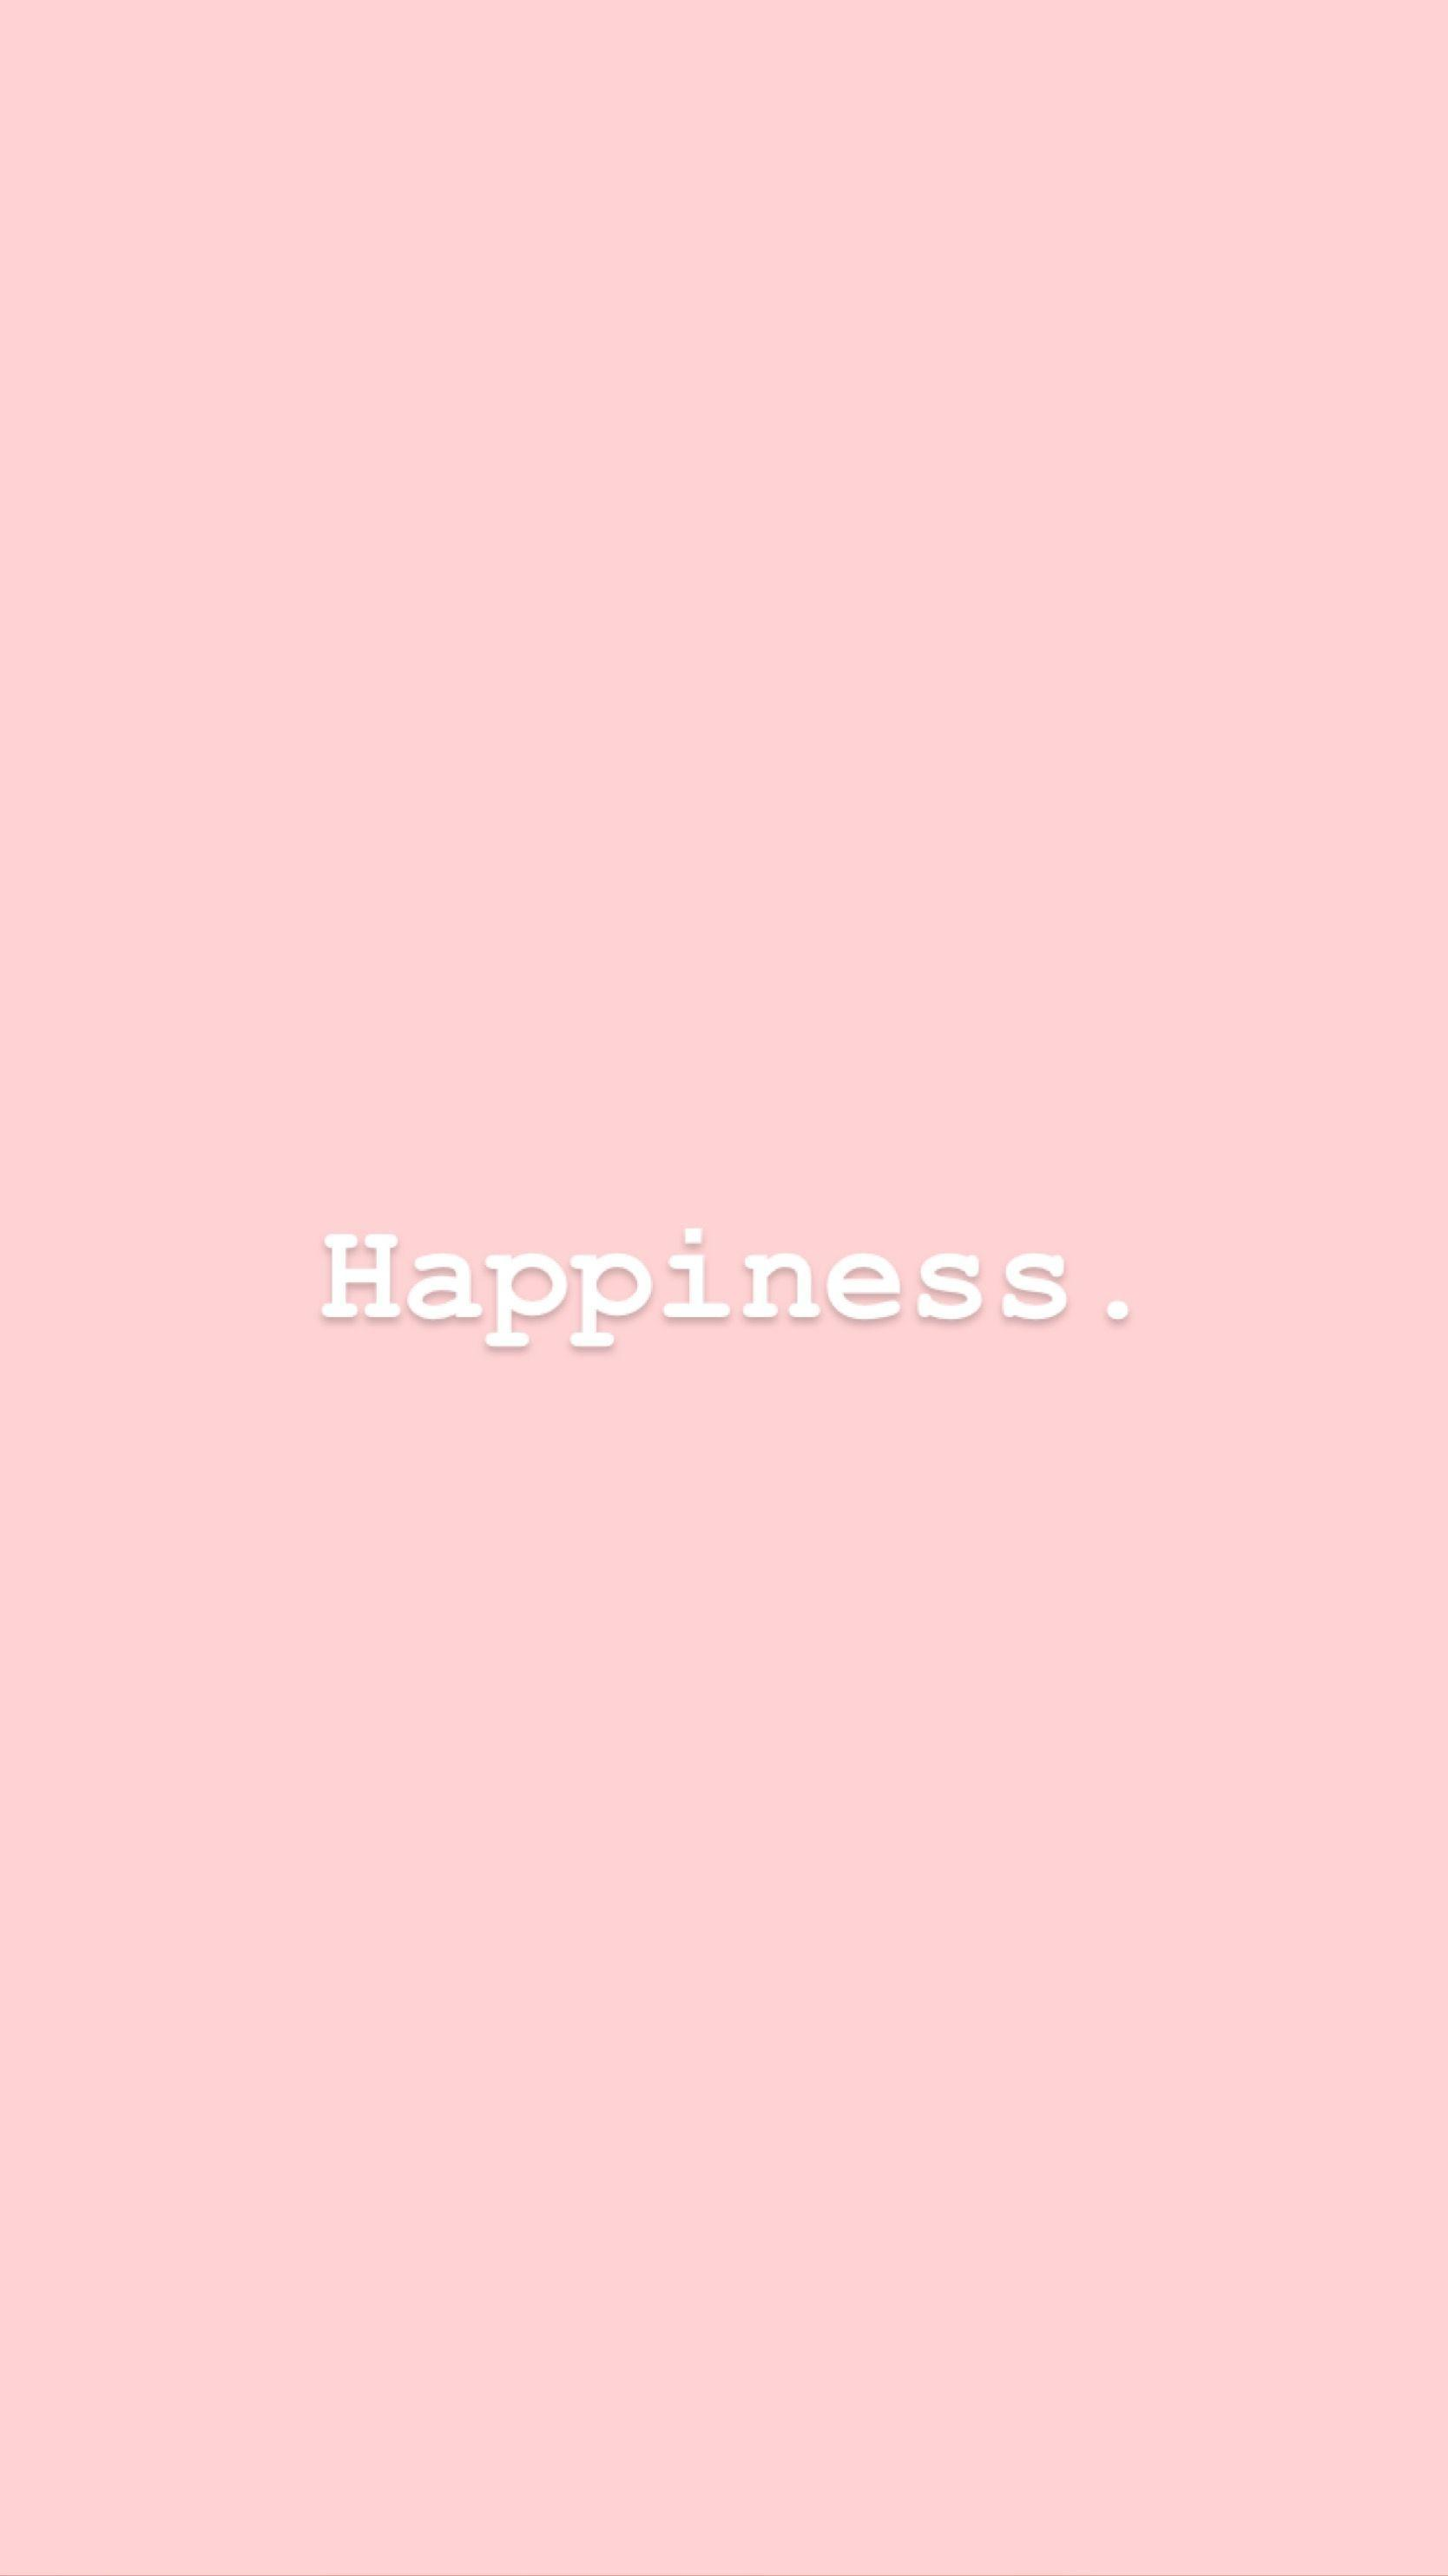 Pastel Pink Aesthetic Wallpapers - Wallpaper Cave